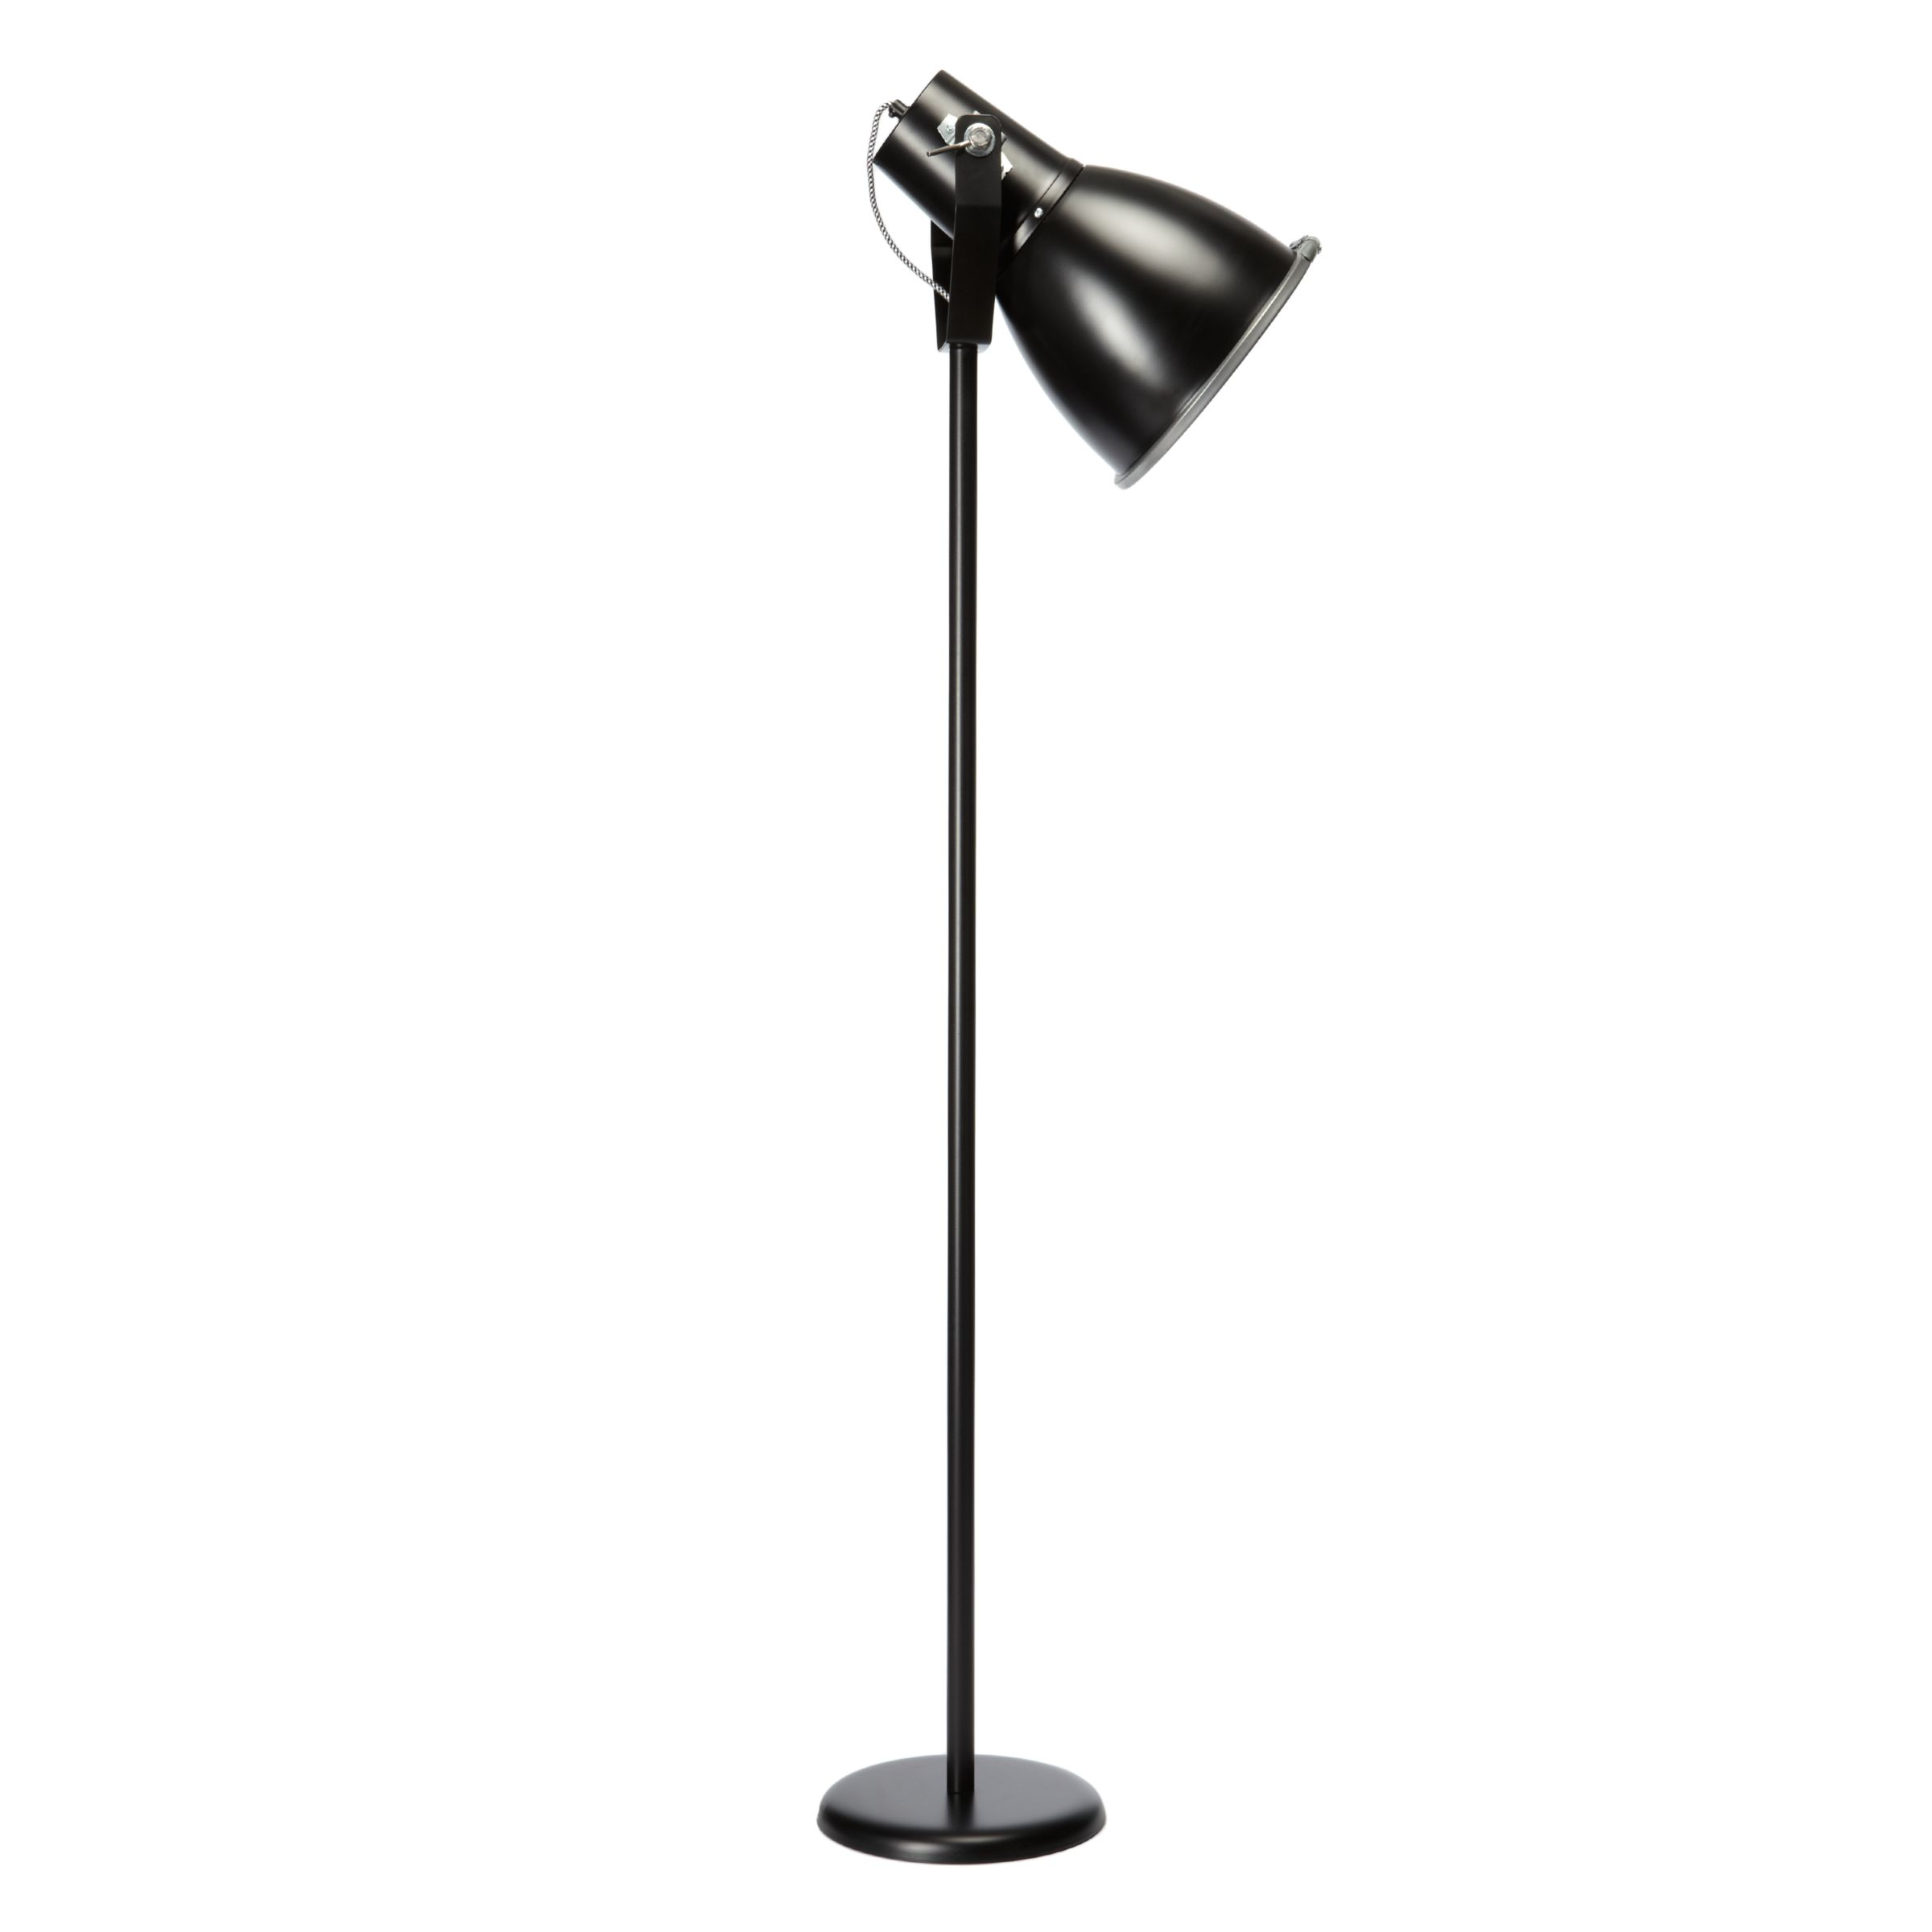 Arc Floor Lamp B And Q : Floor lamps lights collection by b and q